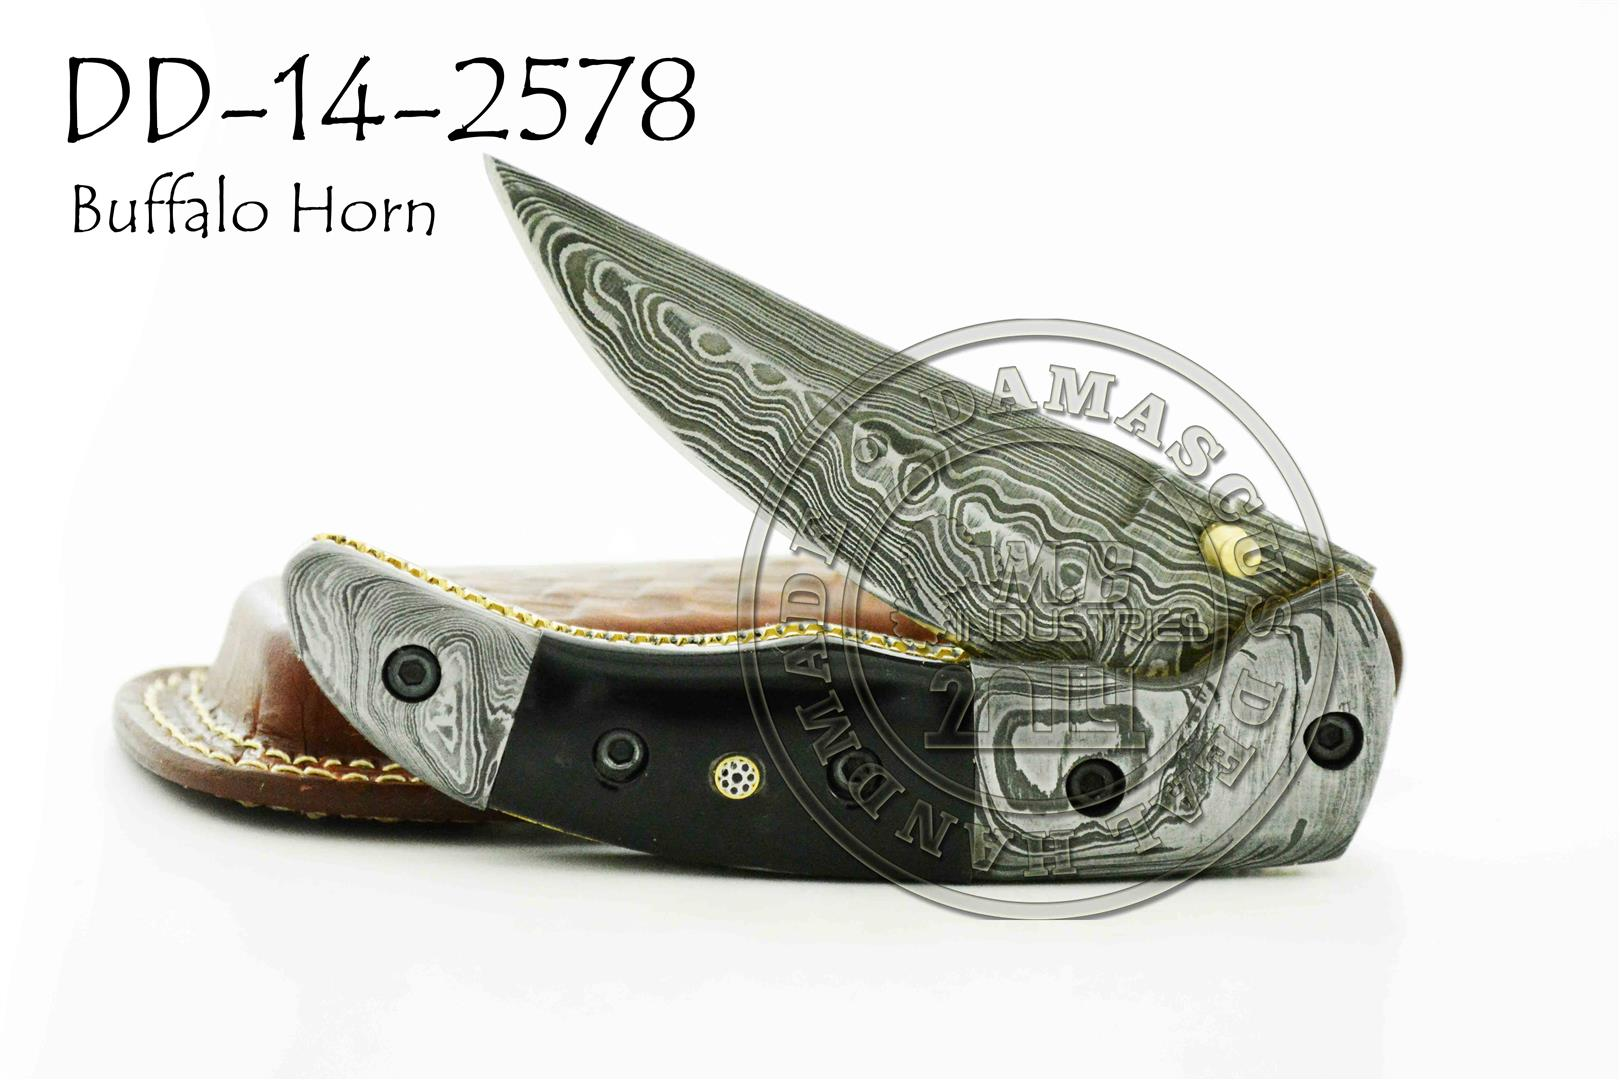 Damascus Steel Folding Knife DD-14-2573